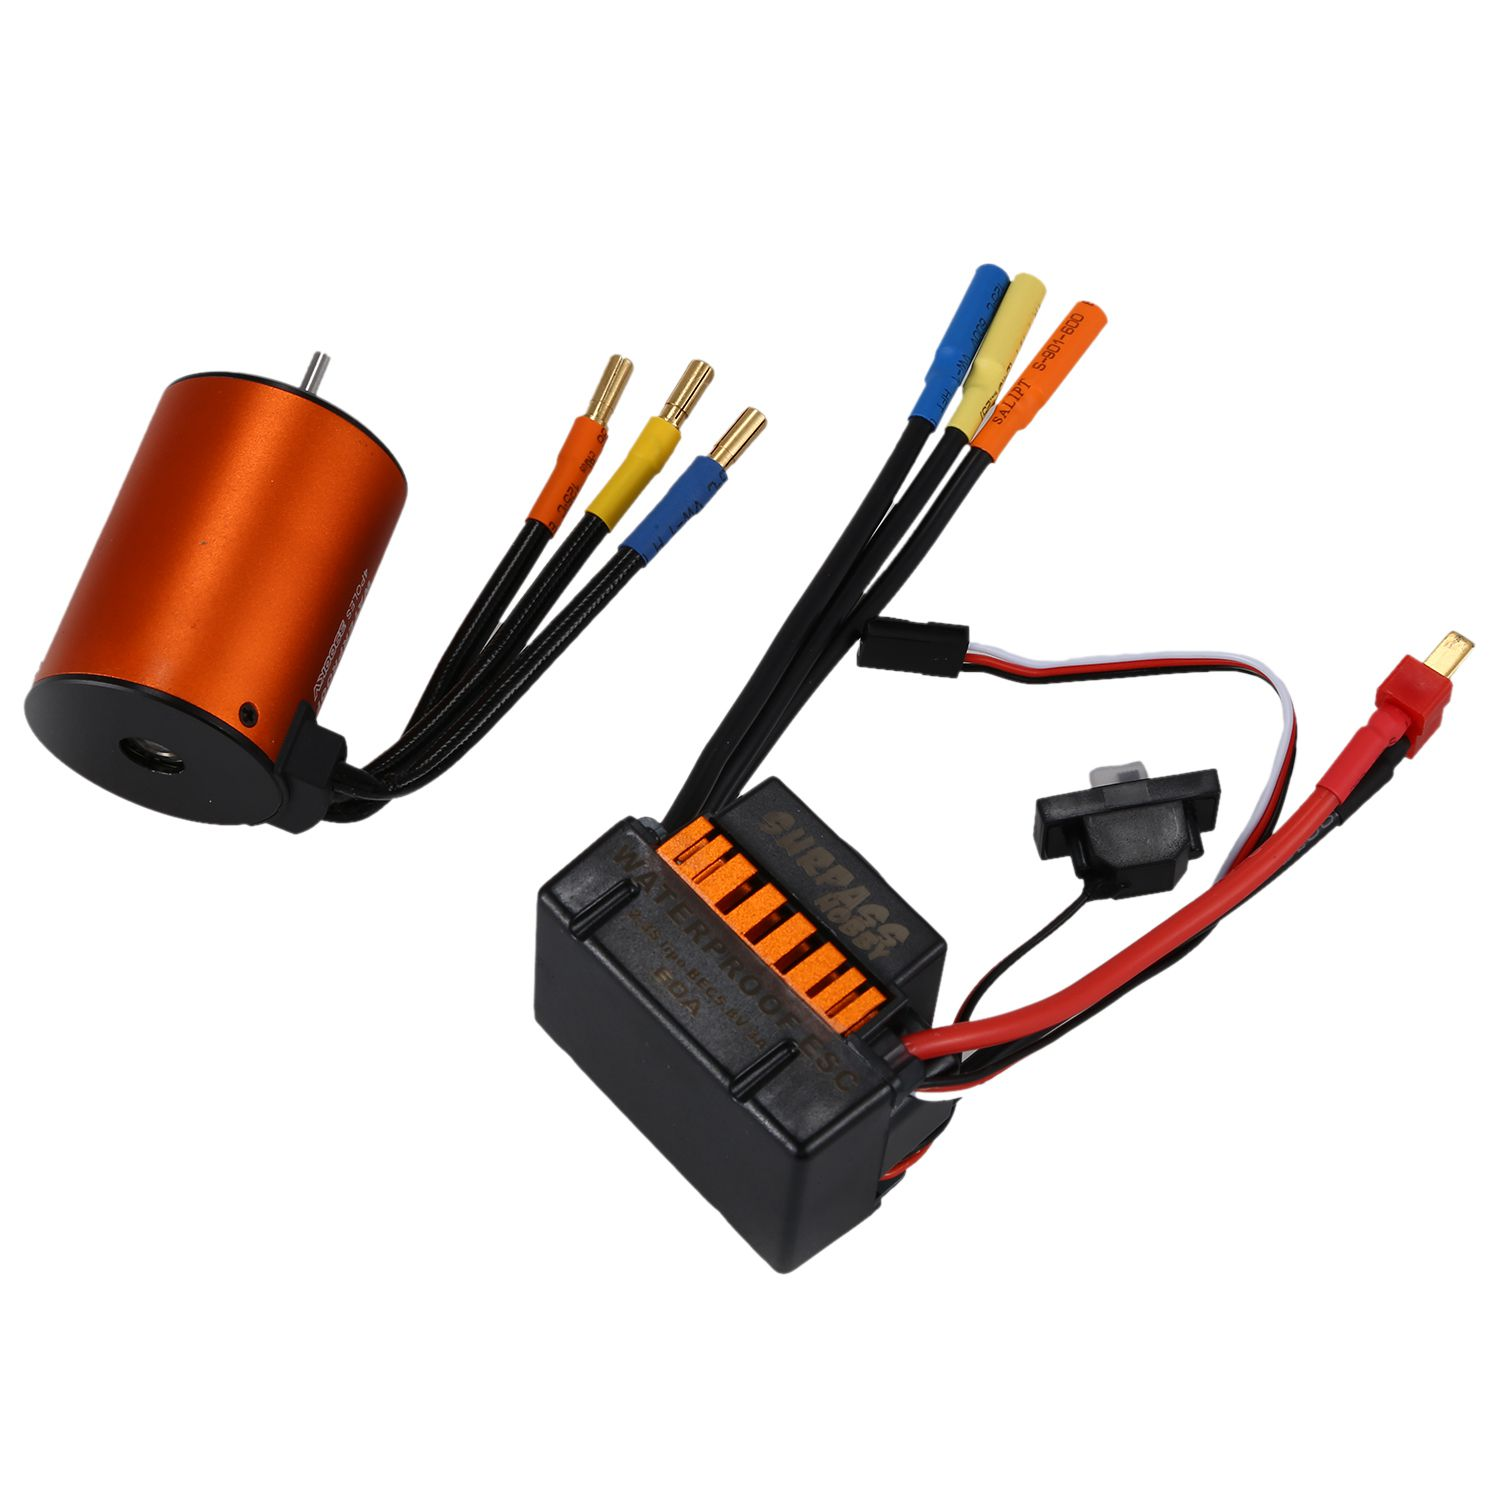 New SURPASS HOBBY Upgrade Waterproof 3650 3900KV RC Brushless Motor with 60A ESC Combo Set for 1/10 RC Car Truck Motor kit rc car motor esc henglong 3851 2 1 10 rc car mad truck parts 550 brush motor 320a brush esc free shipping